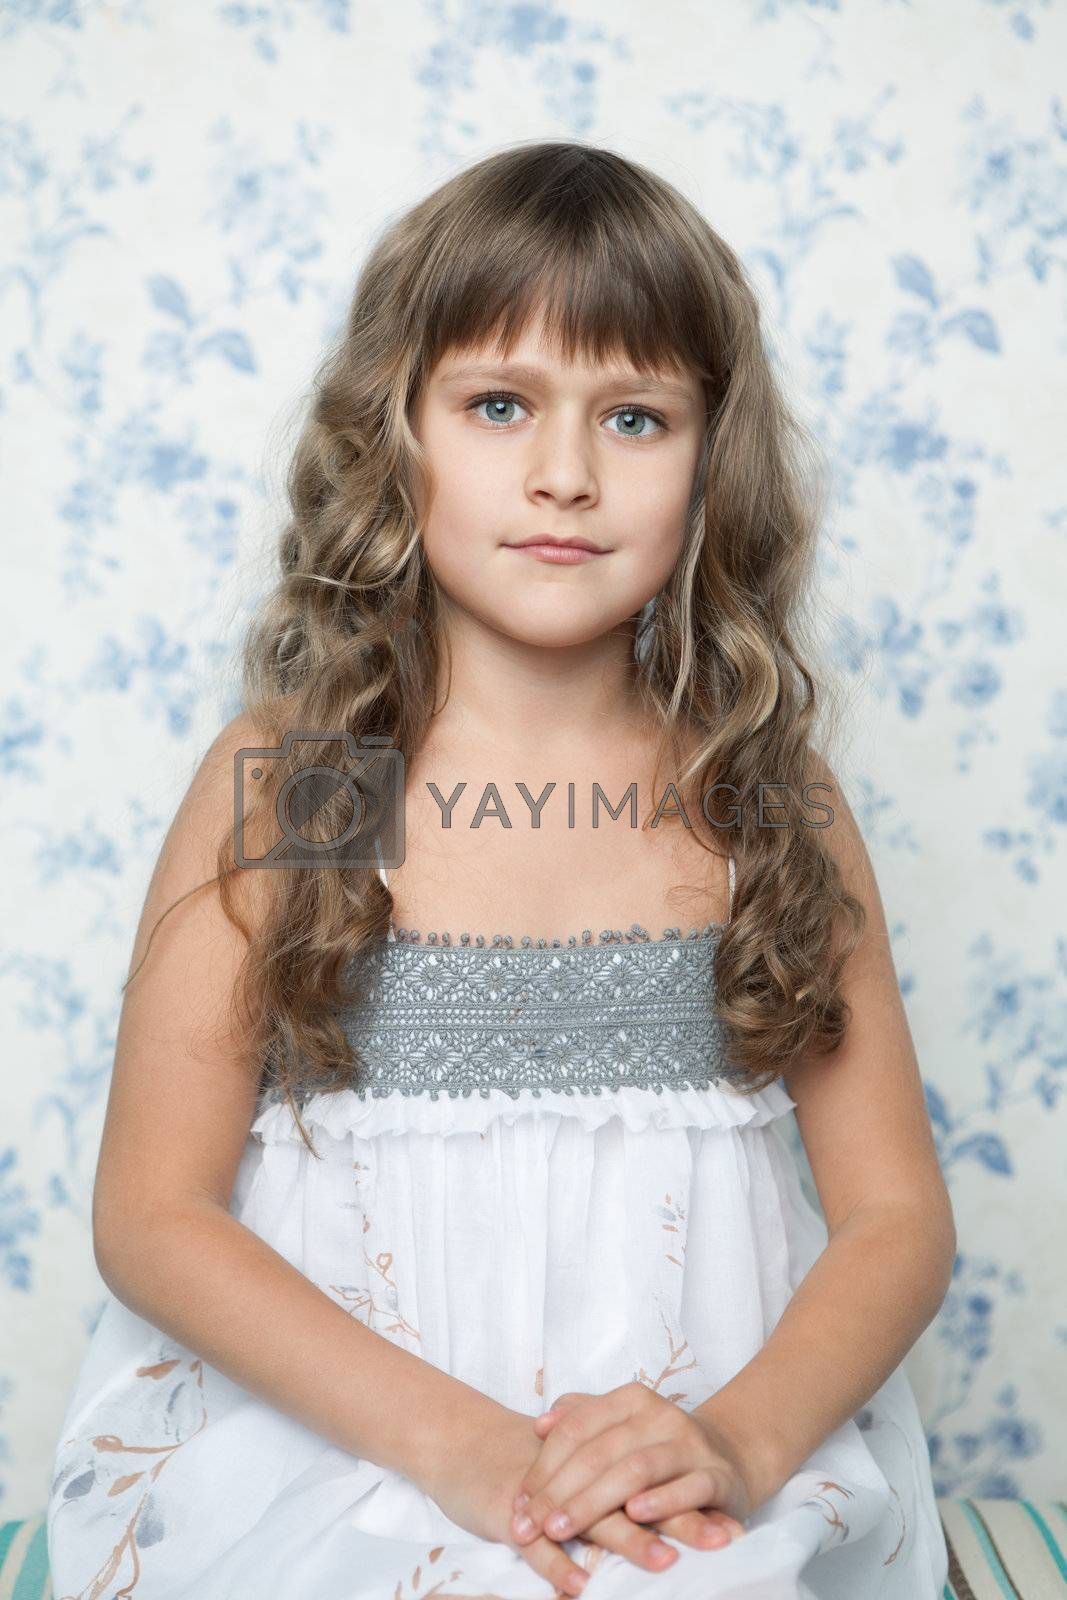 Portrait of sincere cheerful tender young blond girl child with grey eyes and wavy long hair in sitting posture looking at camera